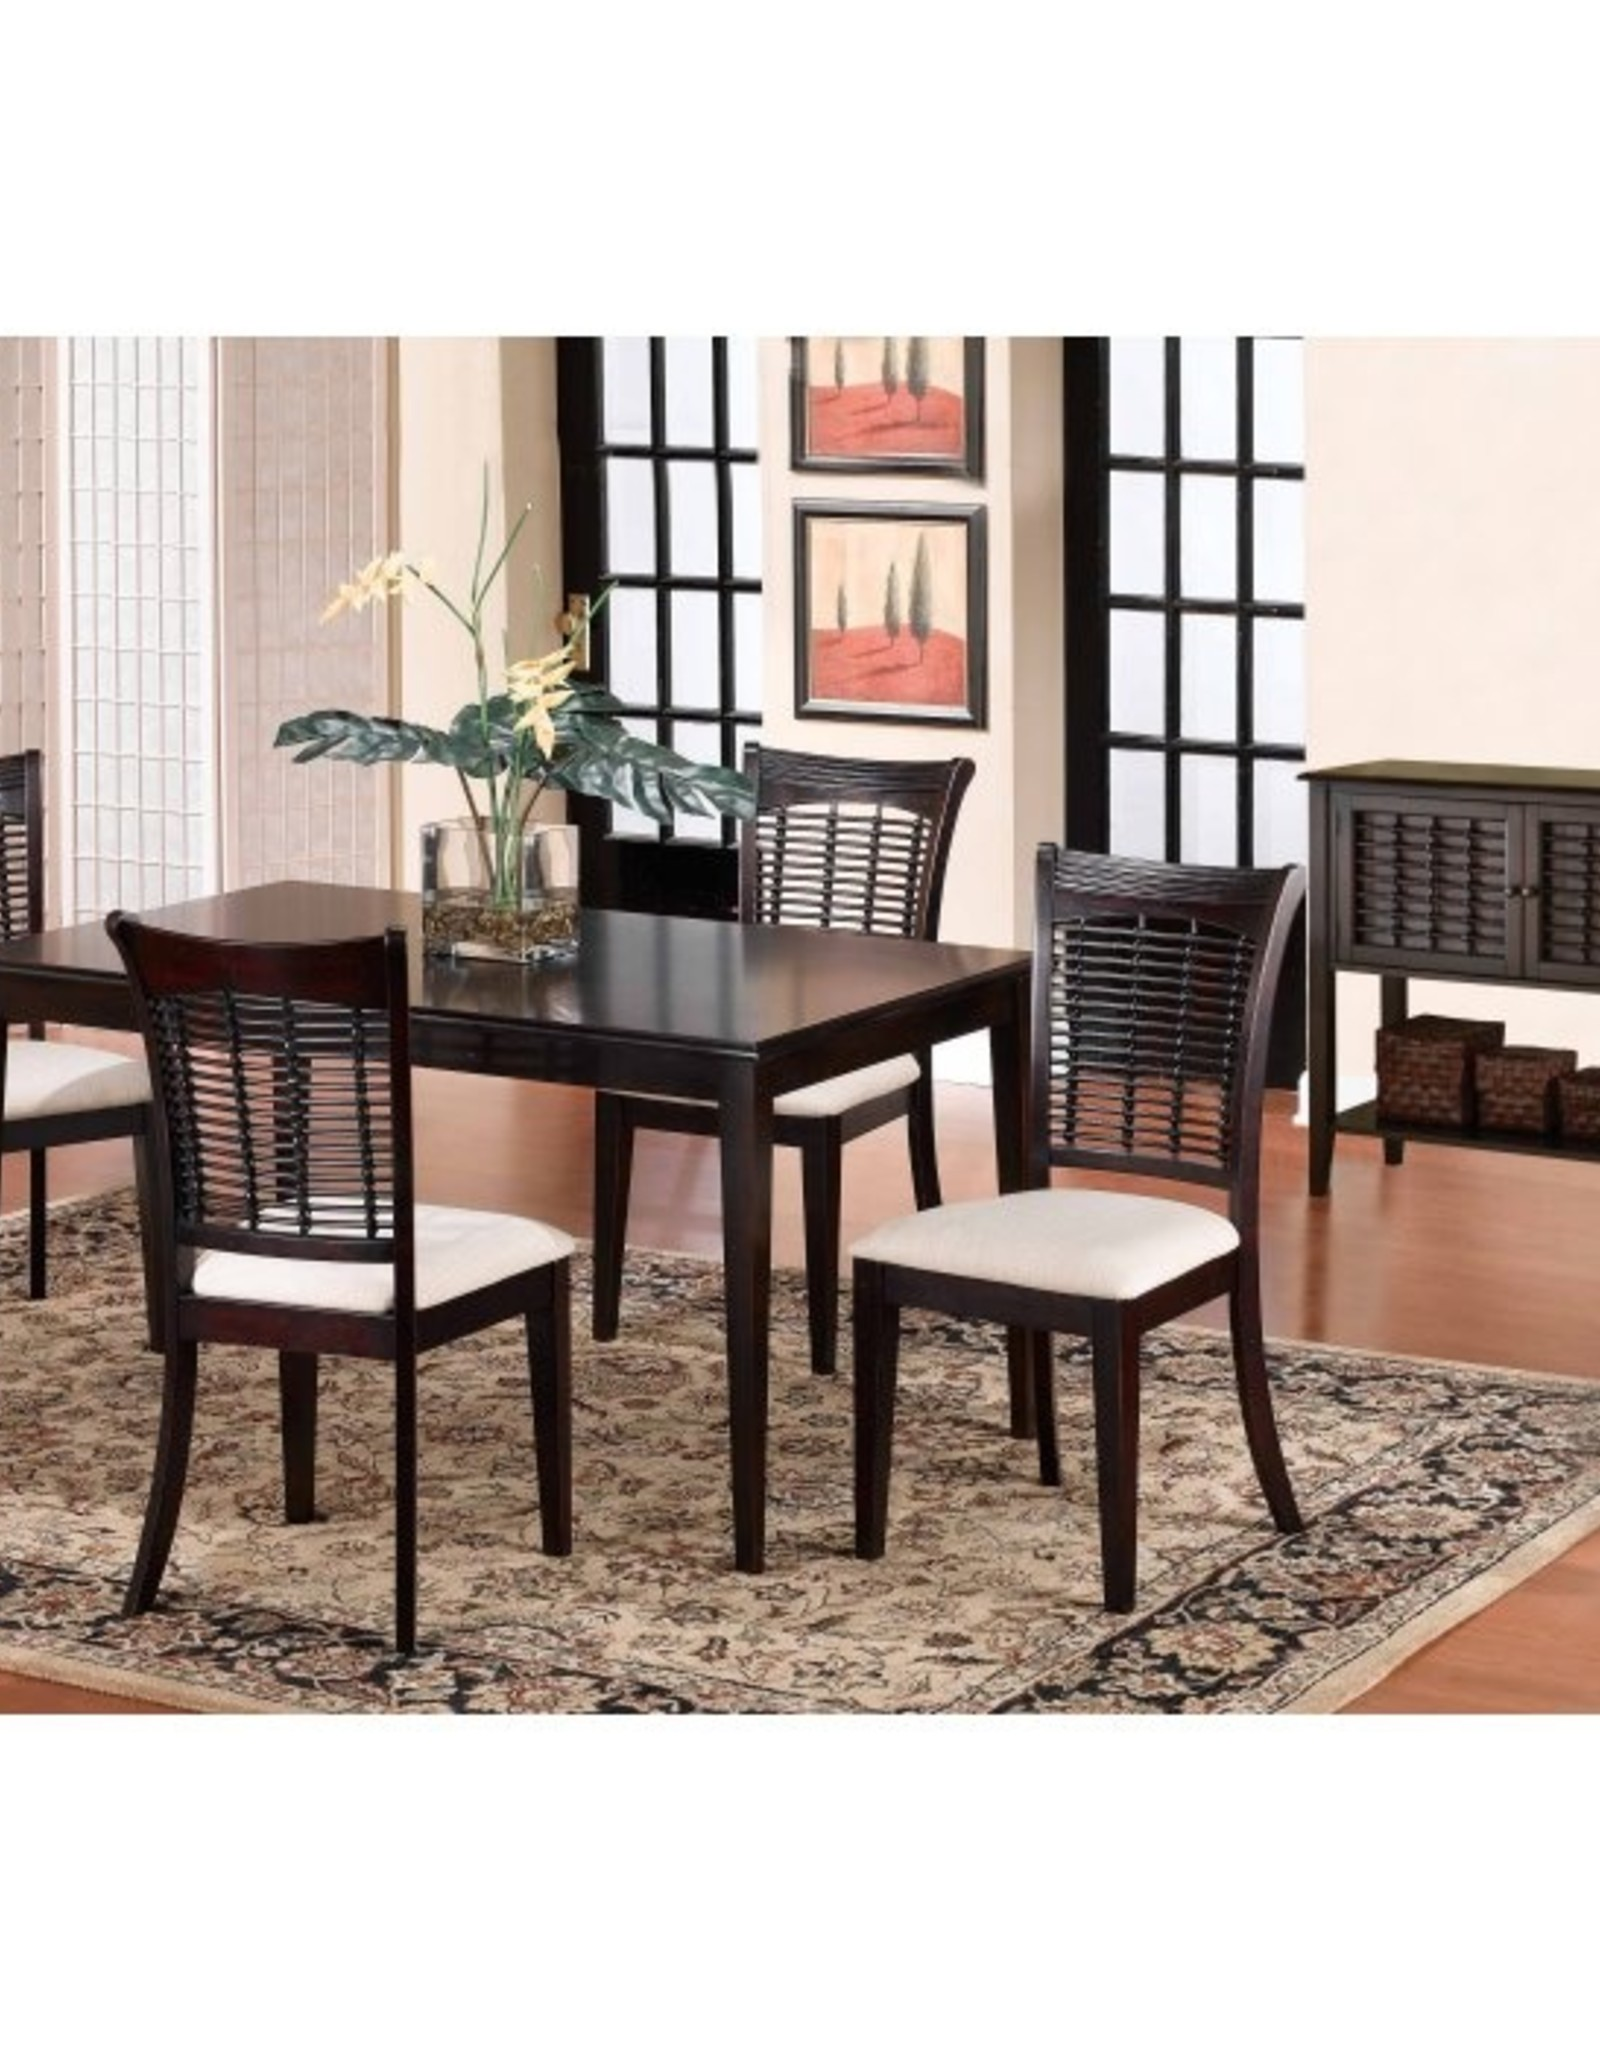 Hillsdale Furniture Bayberry Dining Table w/4 Chairs